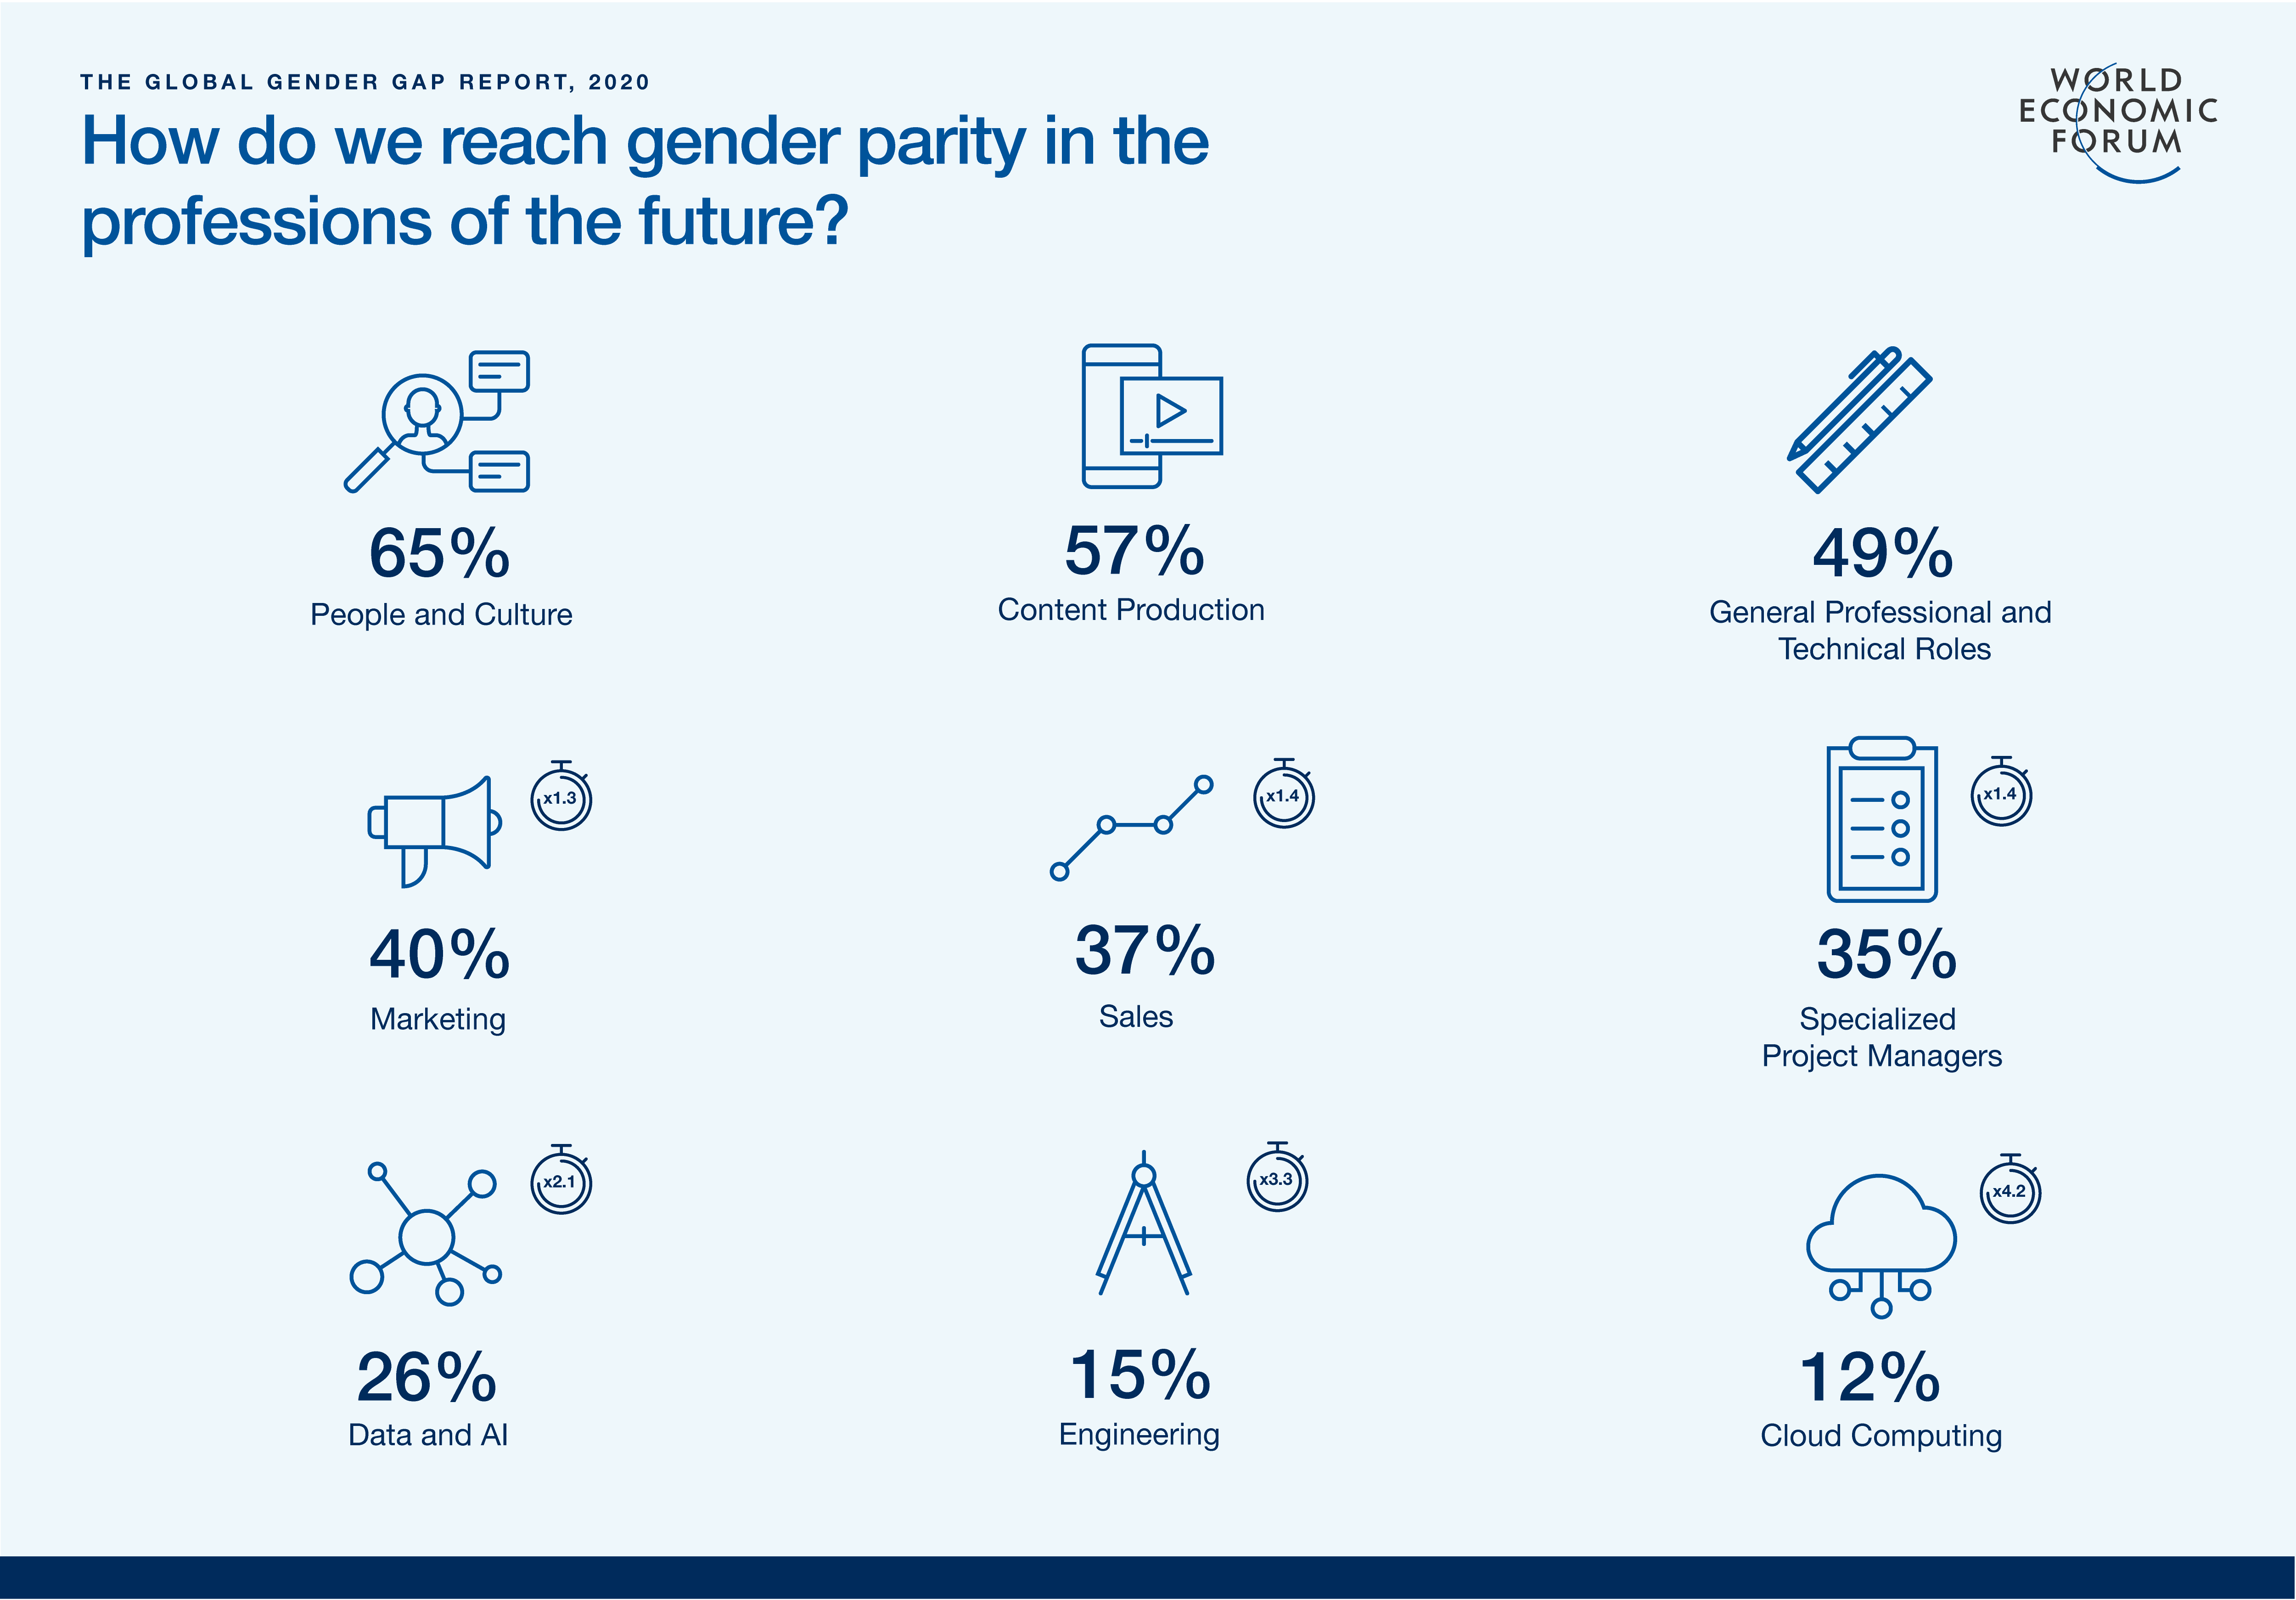 gender parity in the professions of the future - Global Gender Gap Report 2020